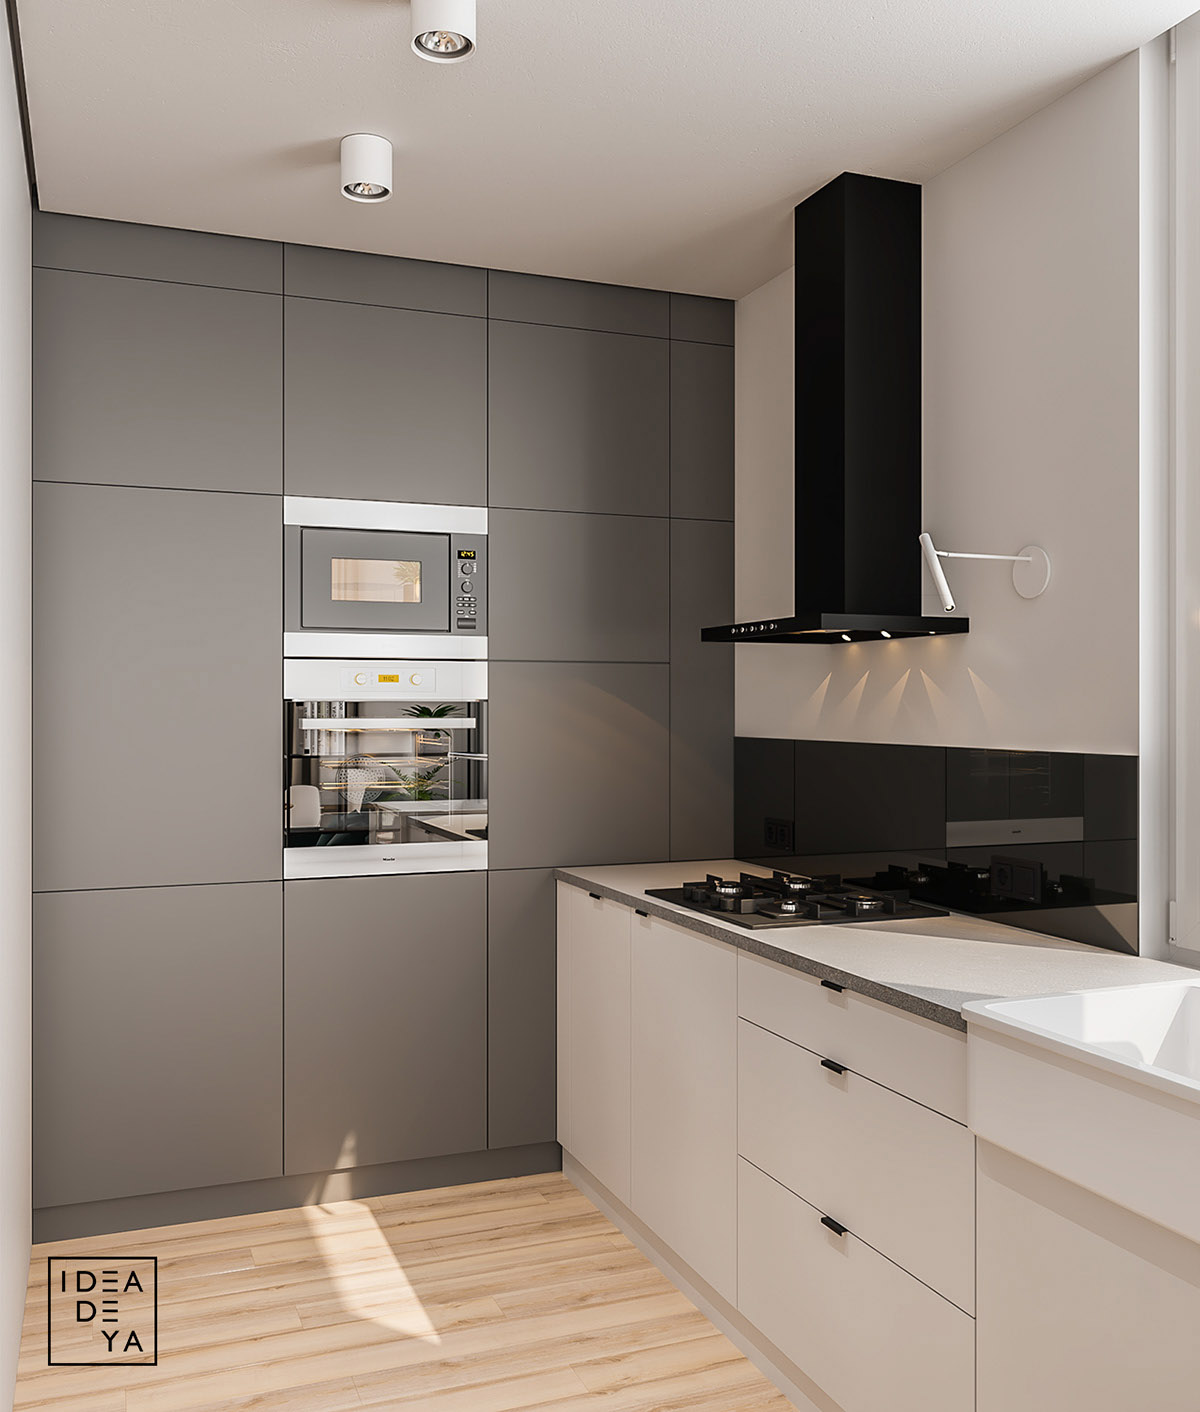 Bachelor Apartment Kitchen Design: Modern & Youthful: 4 Small Apartments With Fierce Style